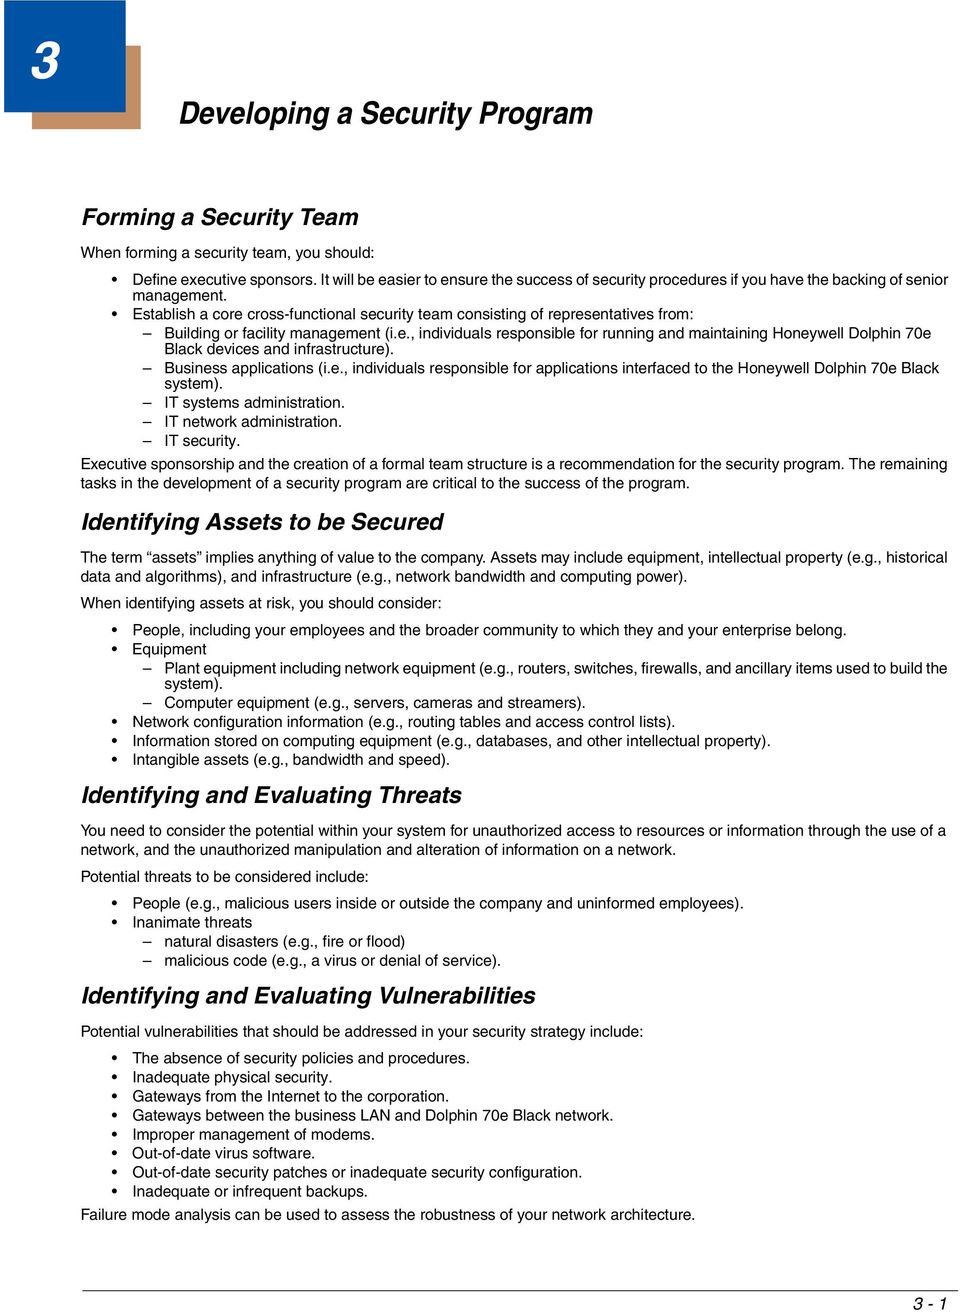 Establish a core cross-functional security team consisting of representatives from: Building or facility management (i.e., individuals responsible for running and maintaining Honeywell Dolphin 70e Black devices and infrastructure).